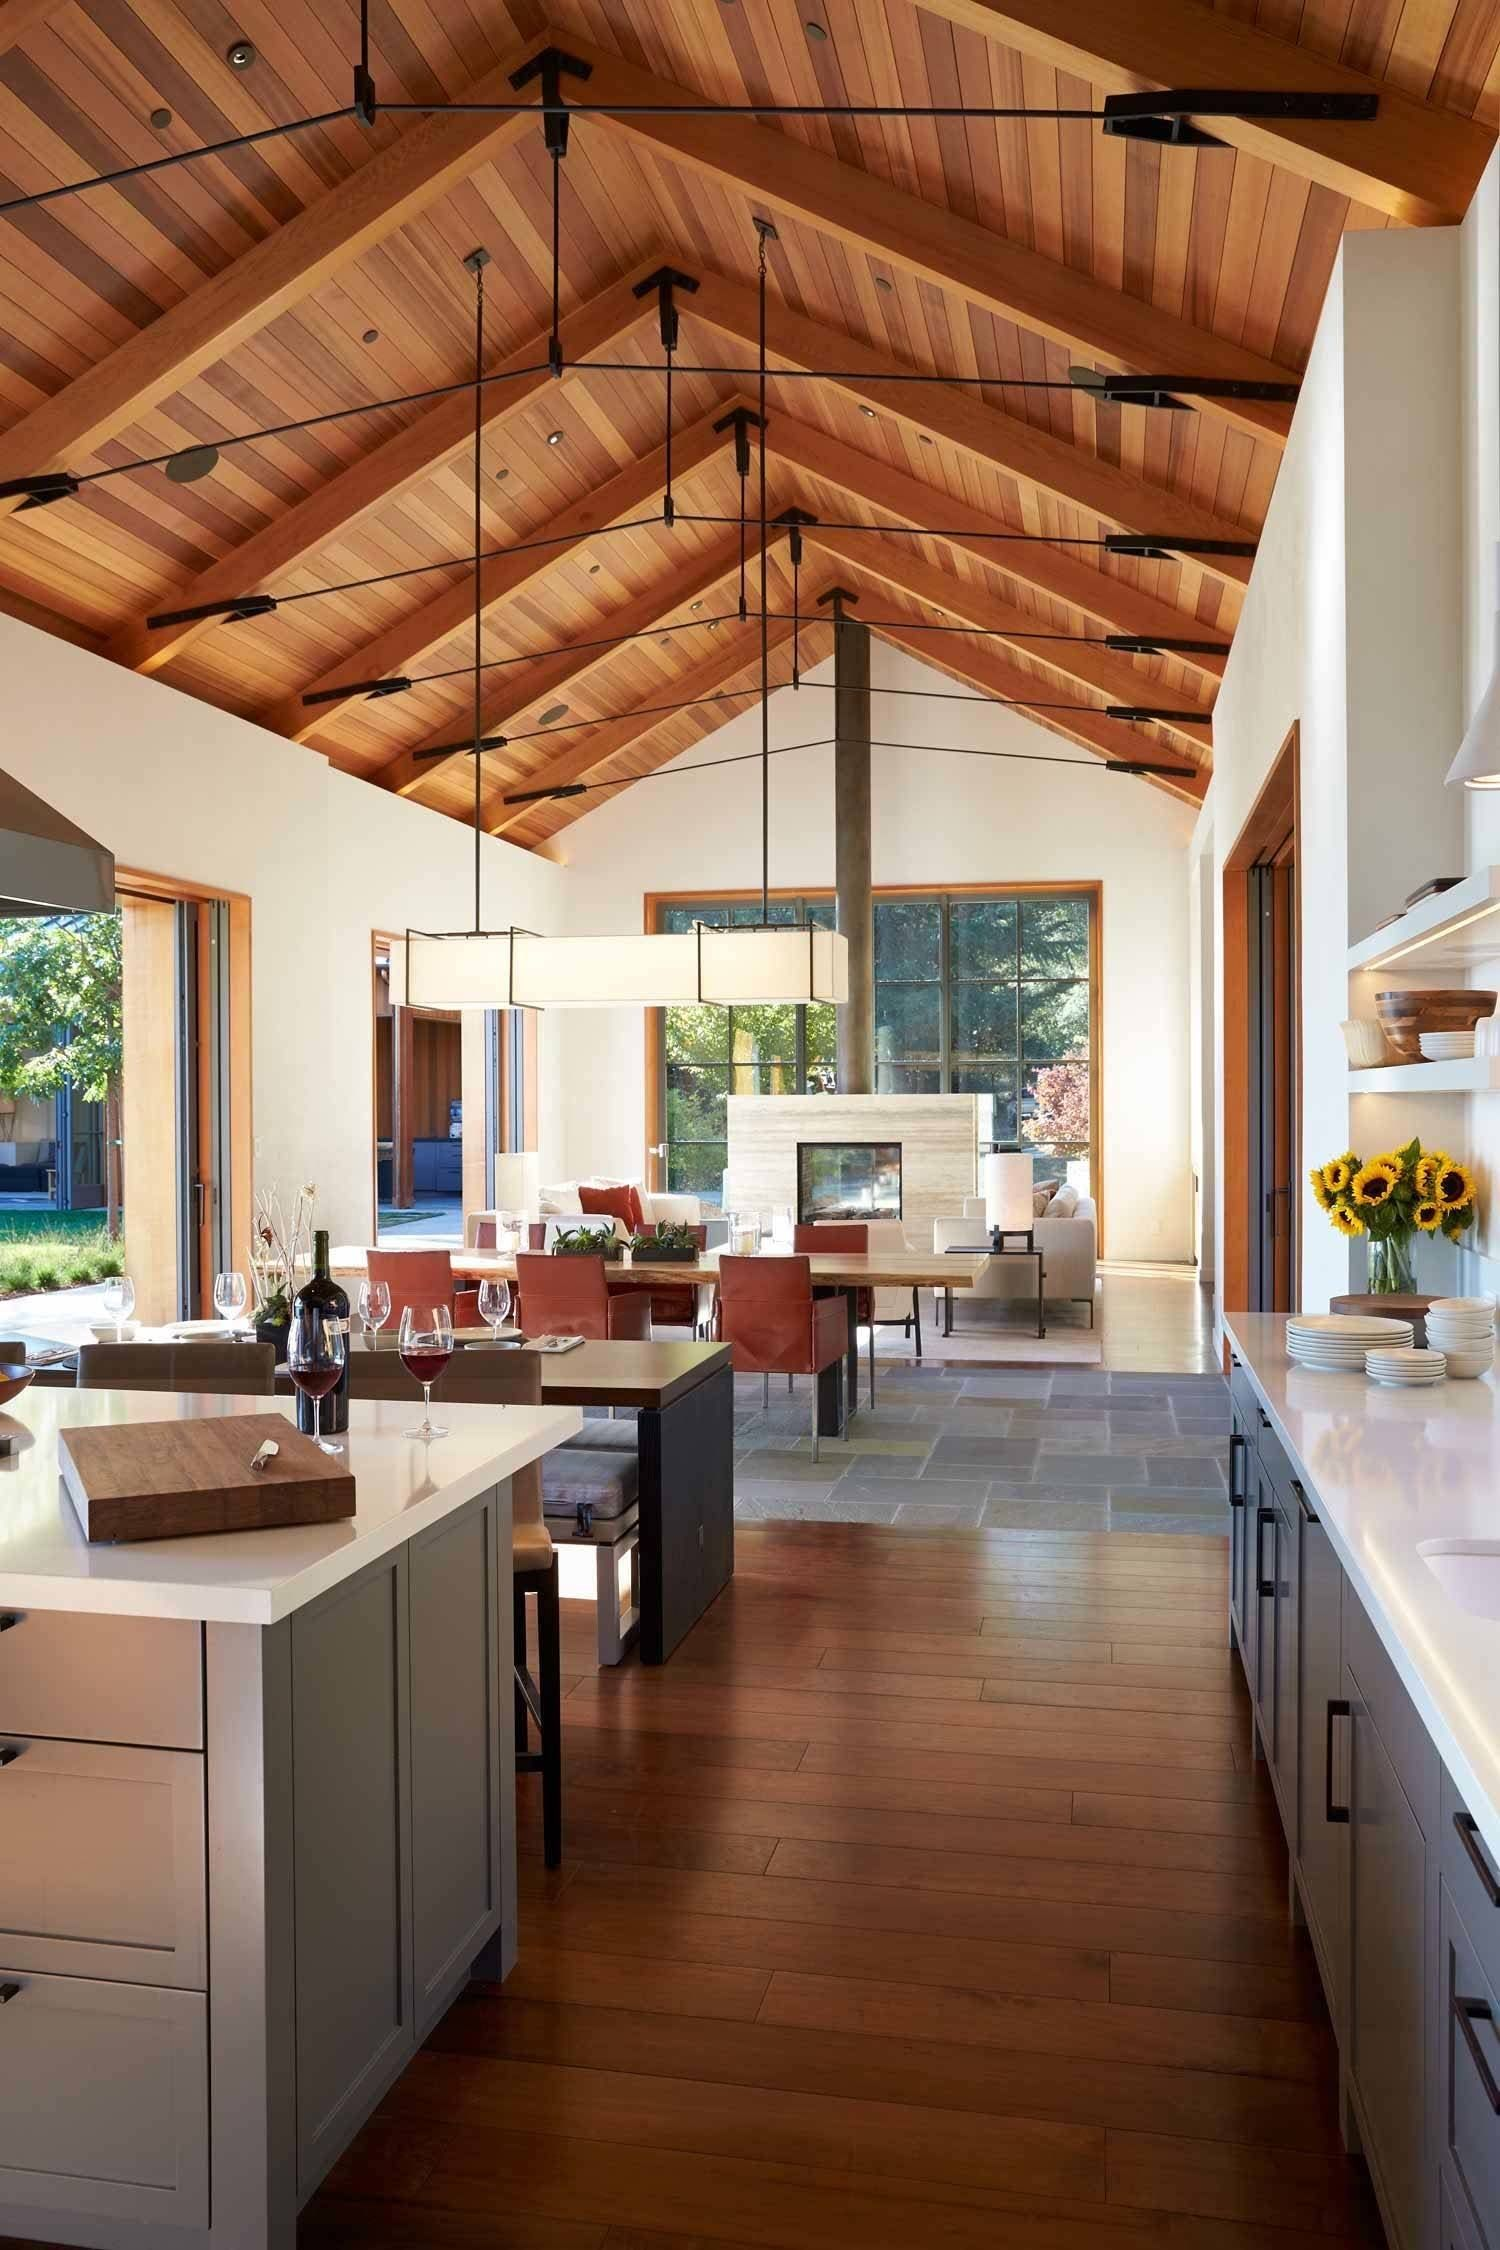 Delightful Sonoma wine country weekend retreat for relaxation #metalbuildinghouses